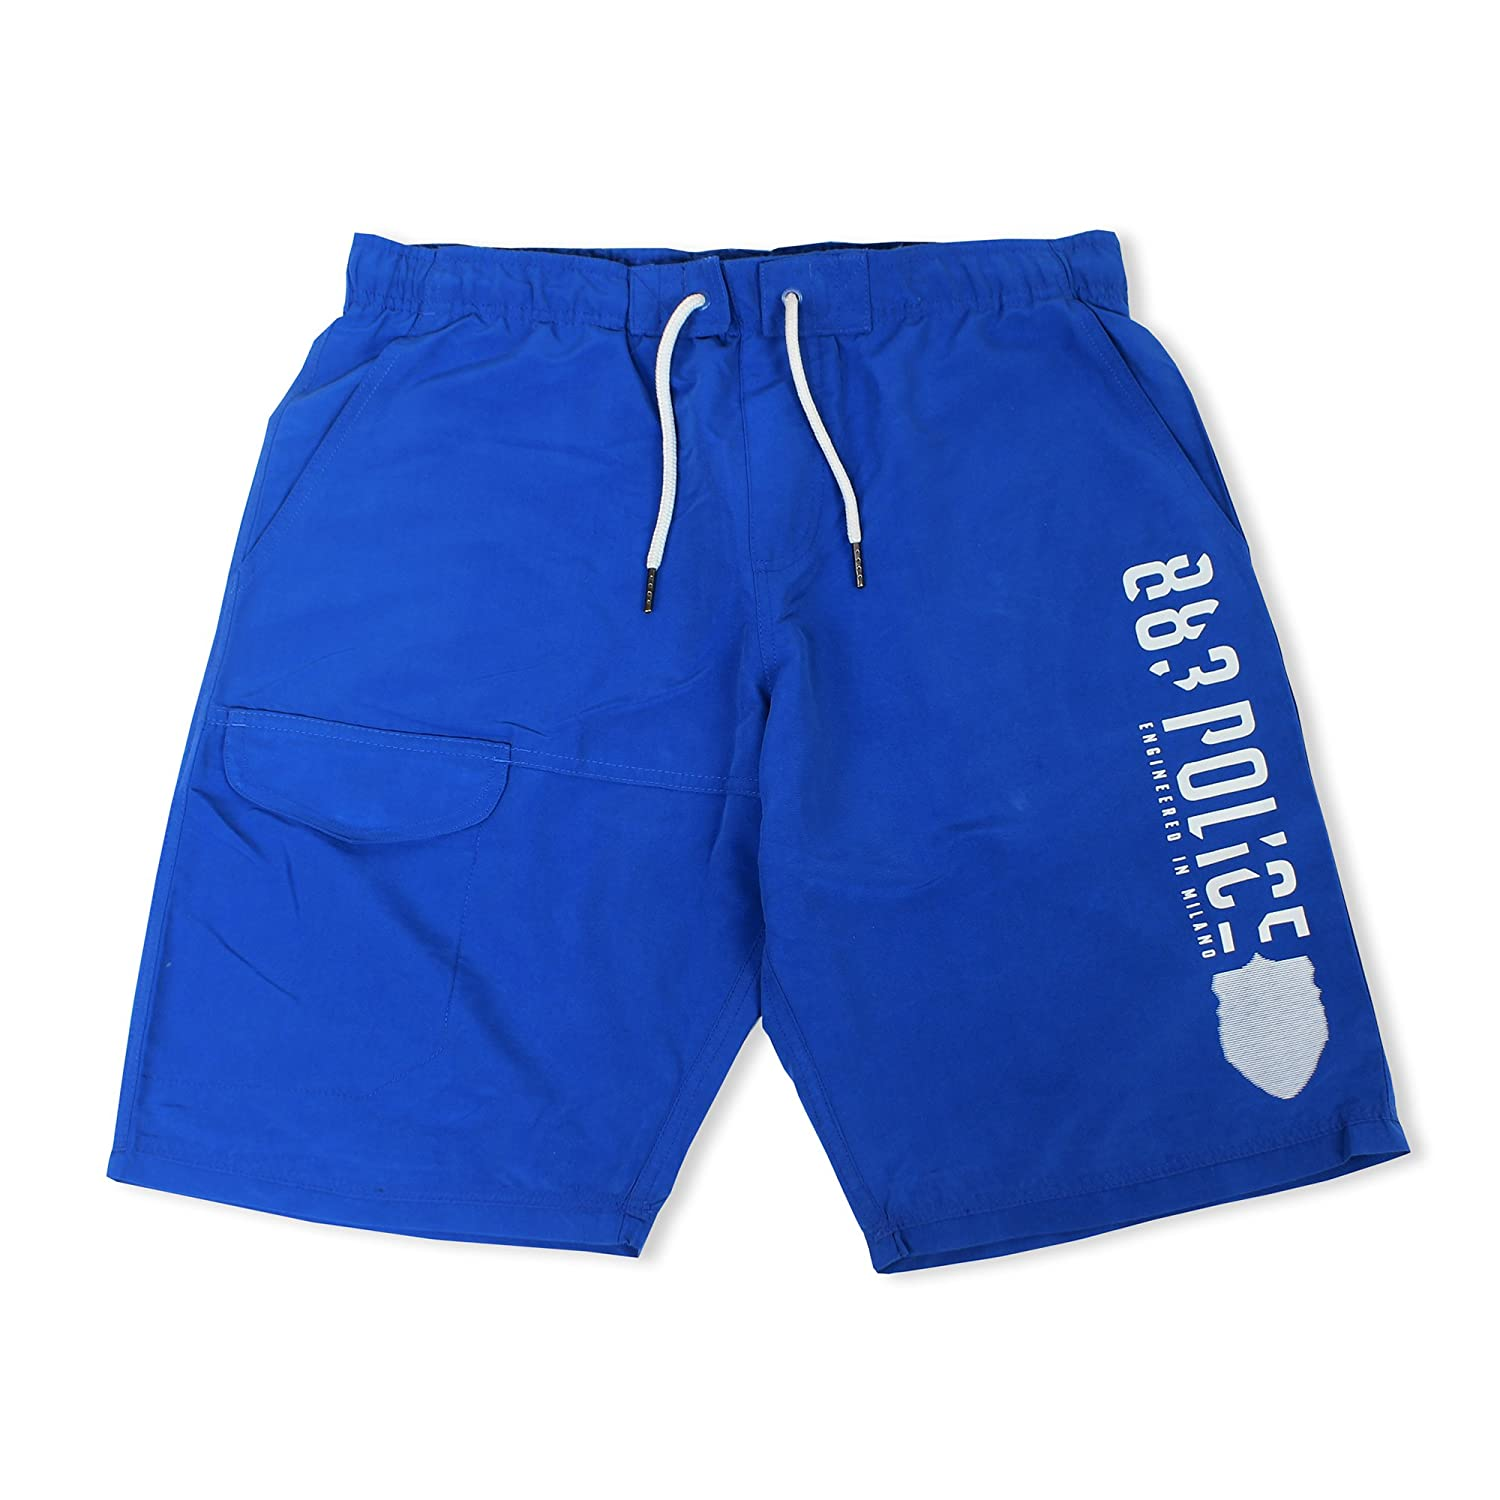 883 Police Mens Foster Electric Blue Swimming Swim Shorts Trunks Swimwear